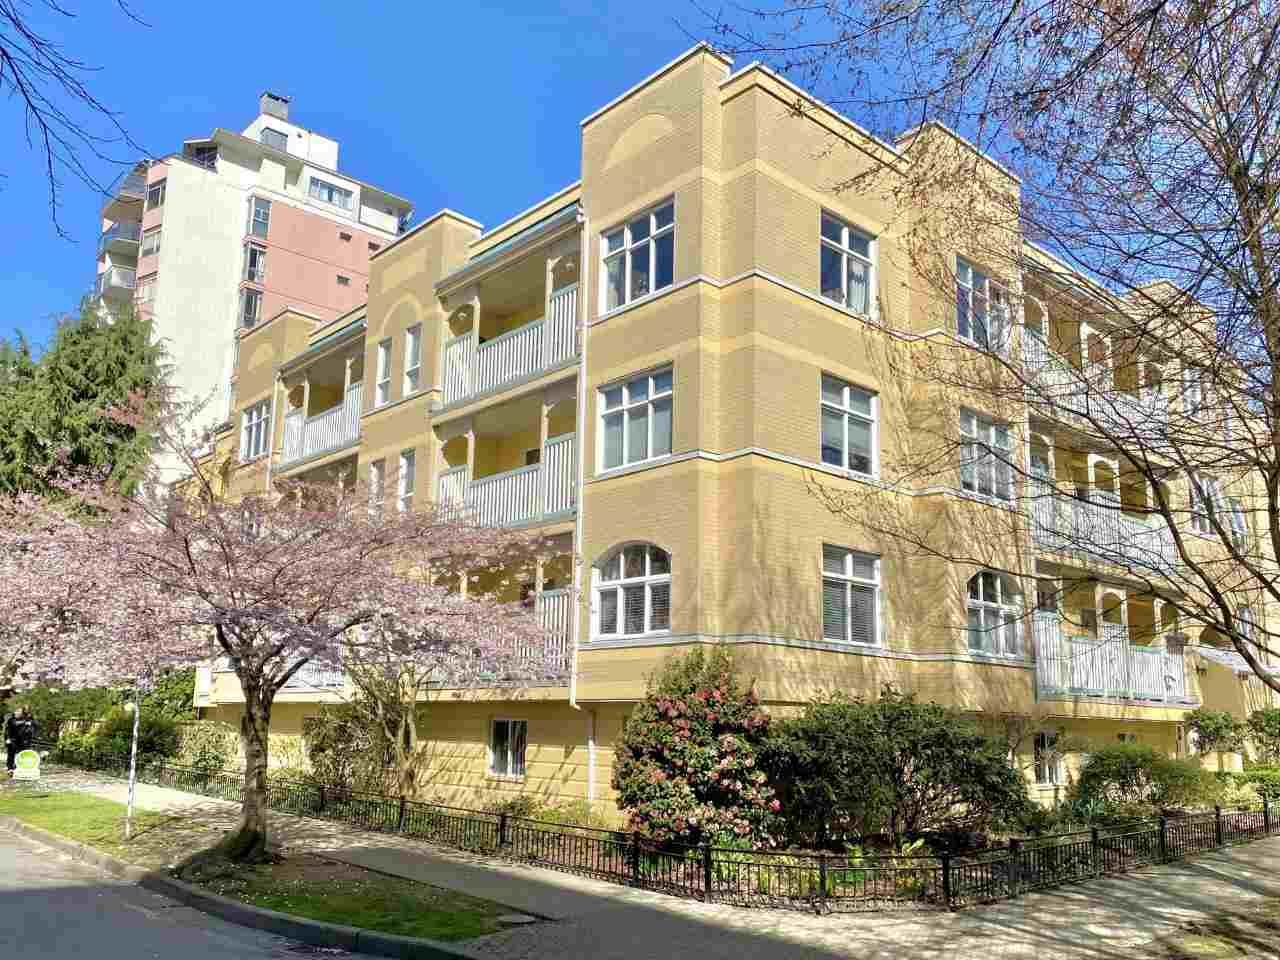 """Main Photo: 304 1125 GILFORD Street in Vancouver: West End VW Condo for sale in """"Gilford Court"""" (Vancouver West)  : MLS®# R2577976"""